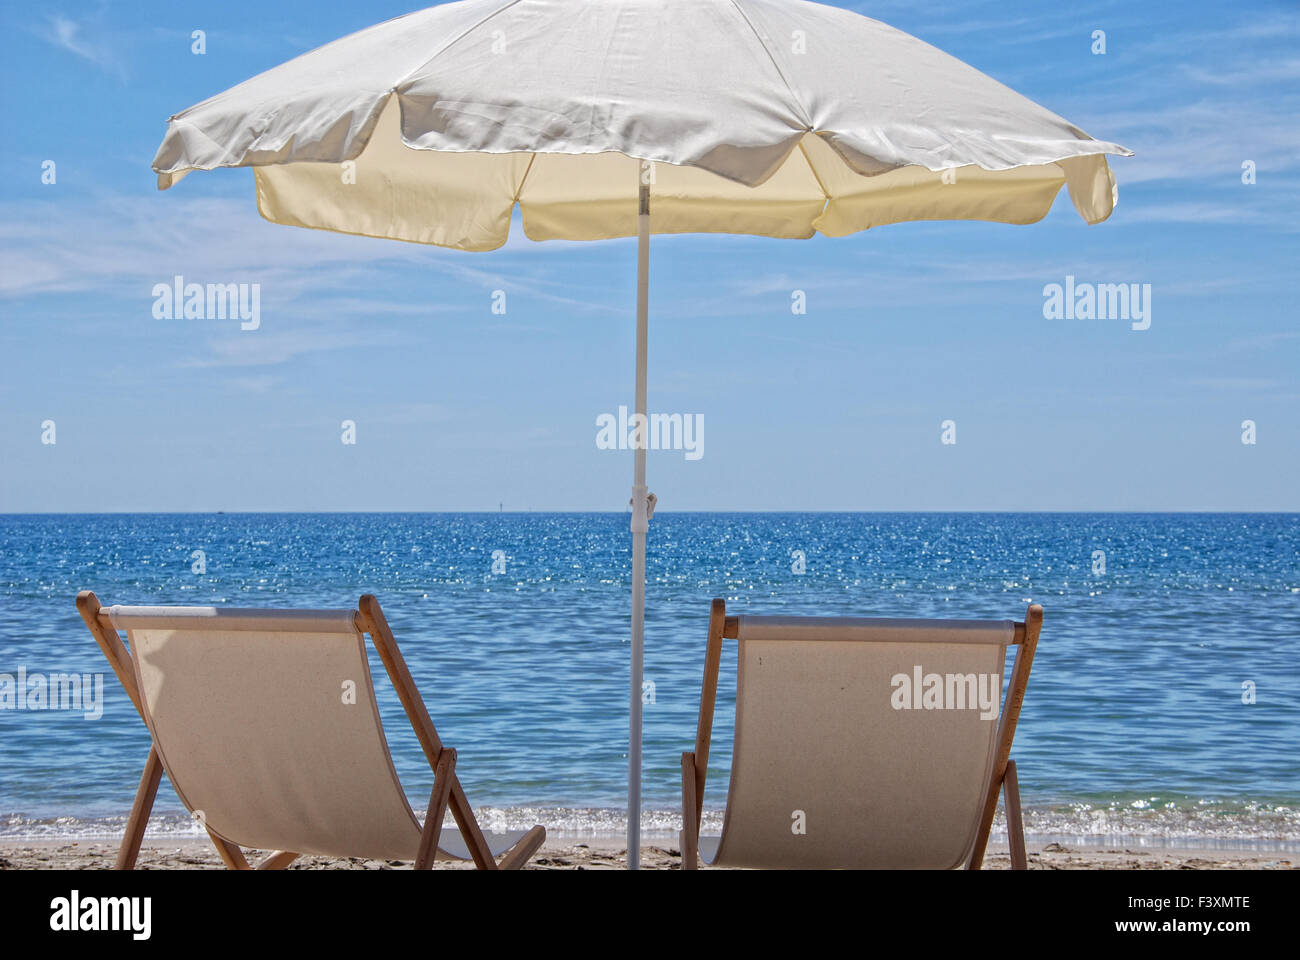 holyday season - Stock Image